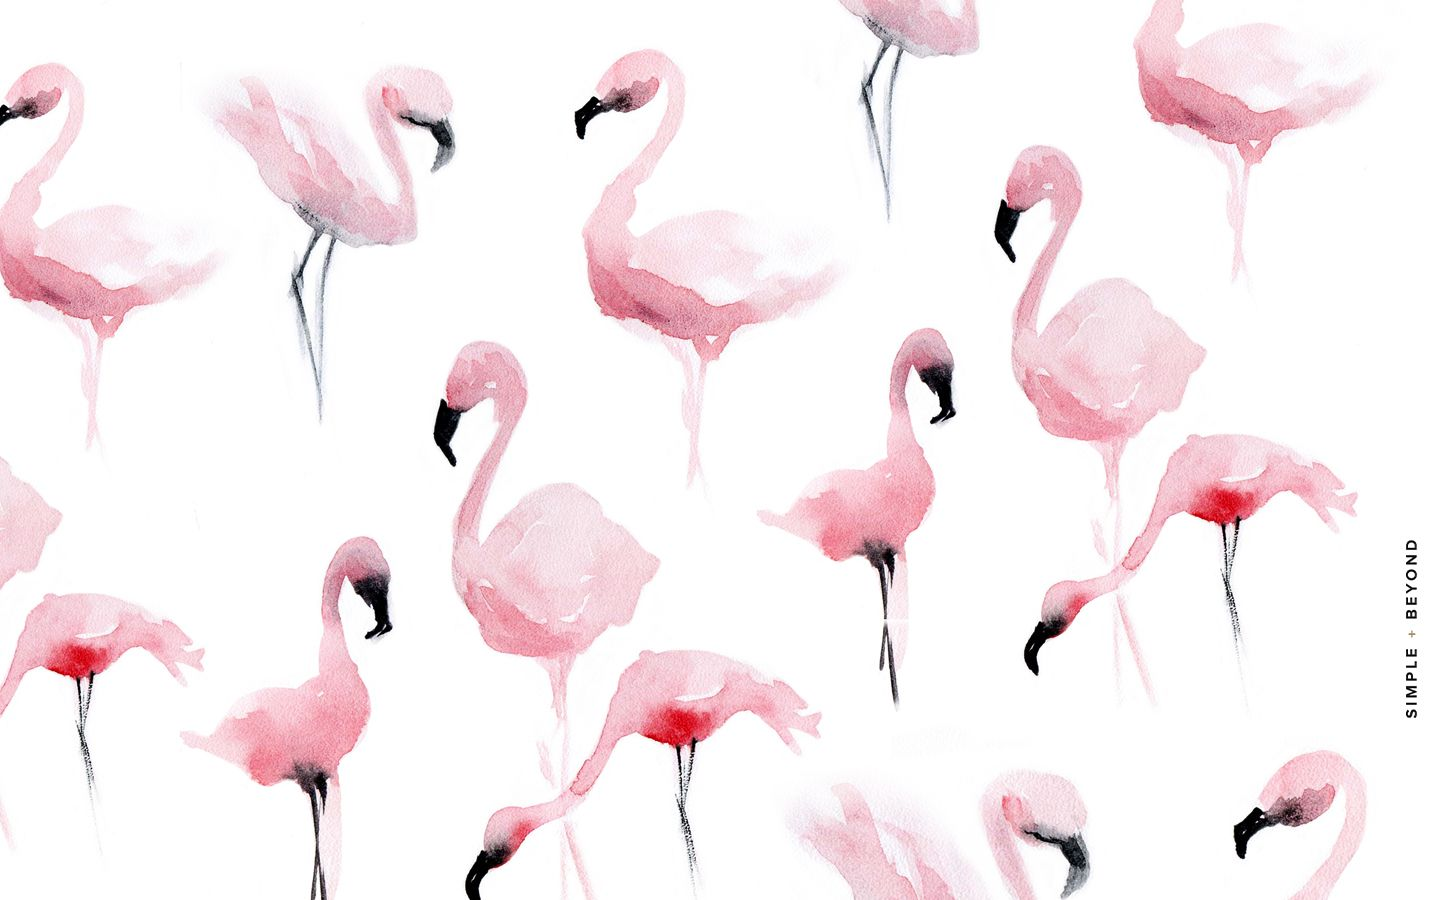 Pink Feathers Falling Wallpaper Flamingo Desktop Wallpaper Simple Beyond Desktop